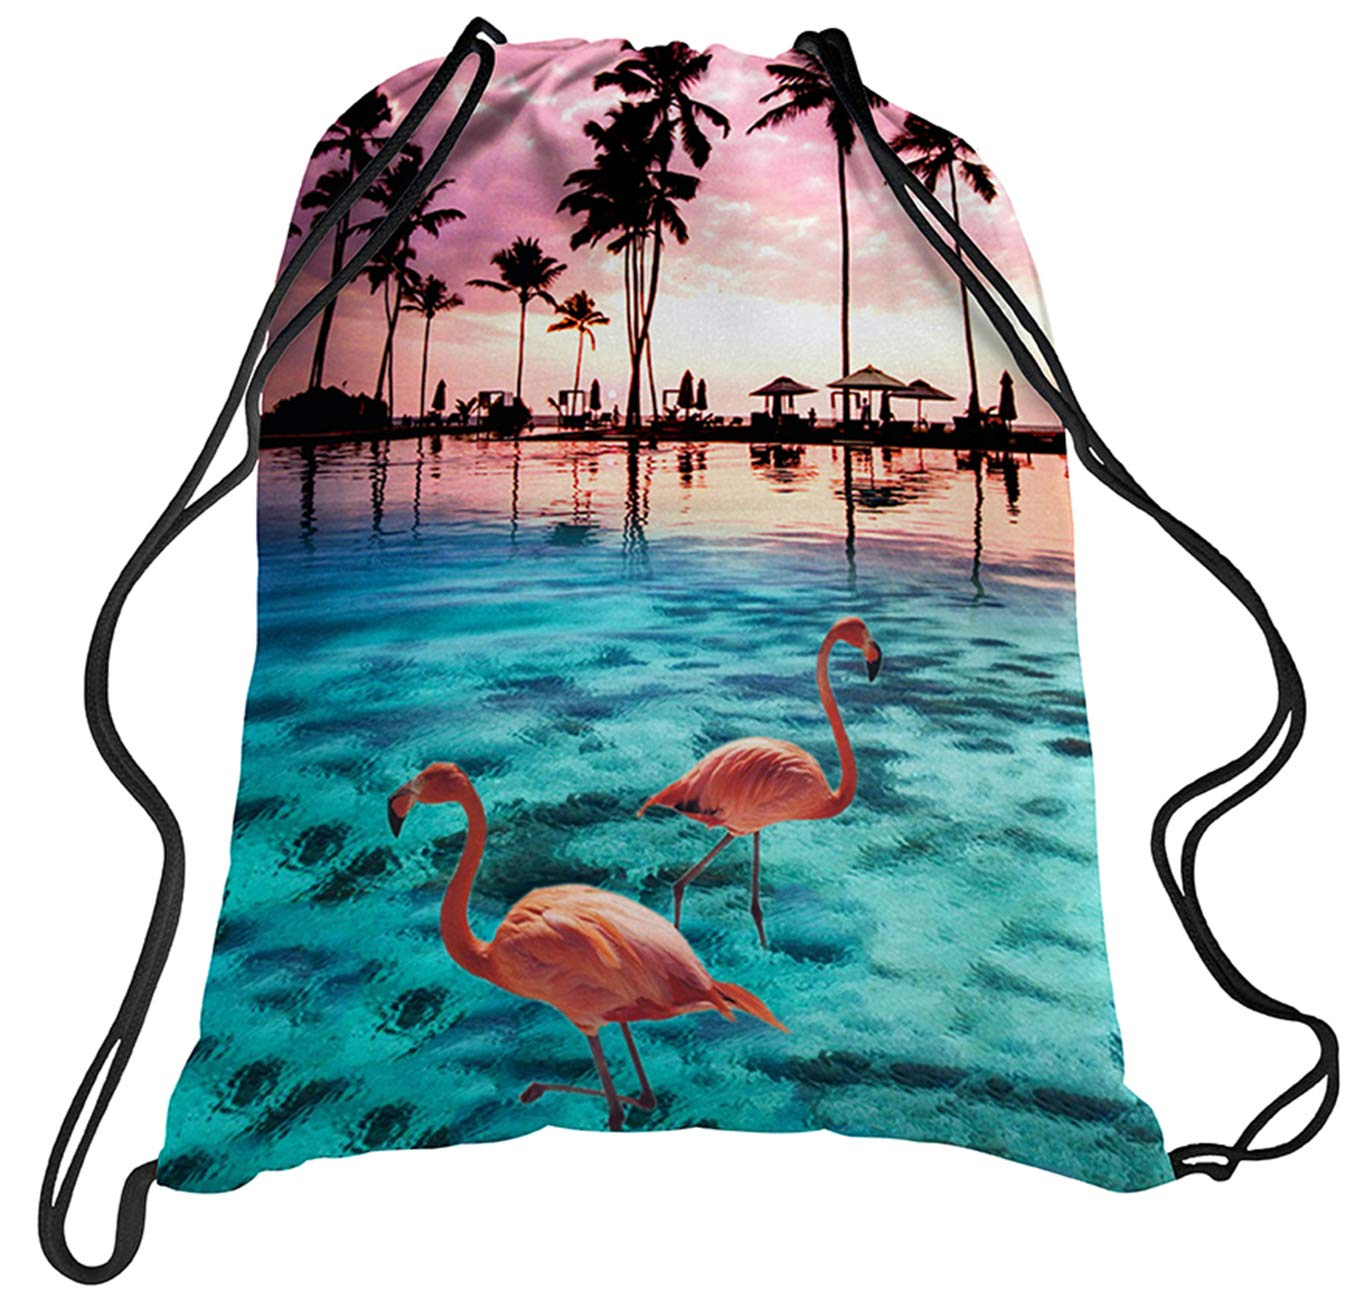 TUONROAD Childrens Travel Hiking School Drawstring Backpack 3d Custom Prints Lightweight Vacation Holiday Beach Theme Palm Tree Pink Flamingo Light Blue Seawater Sunset Glow Cute String Sack Pack